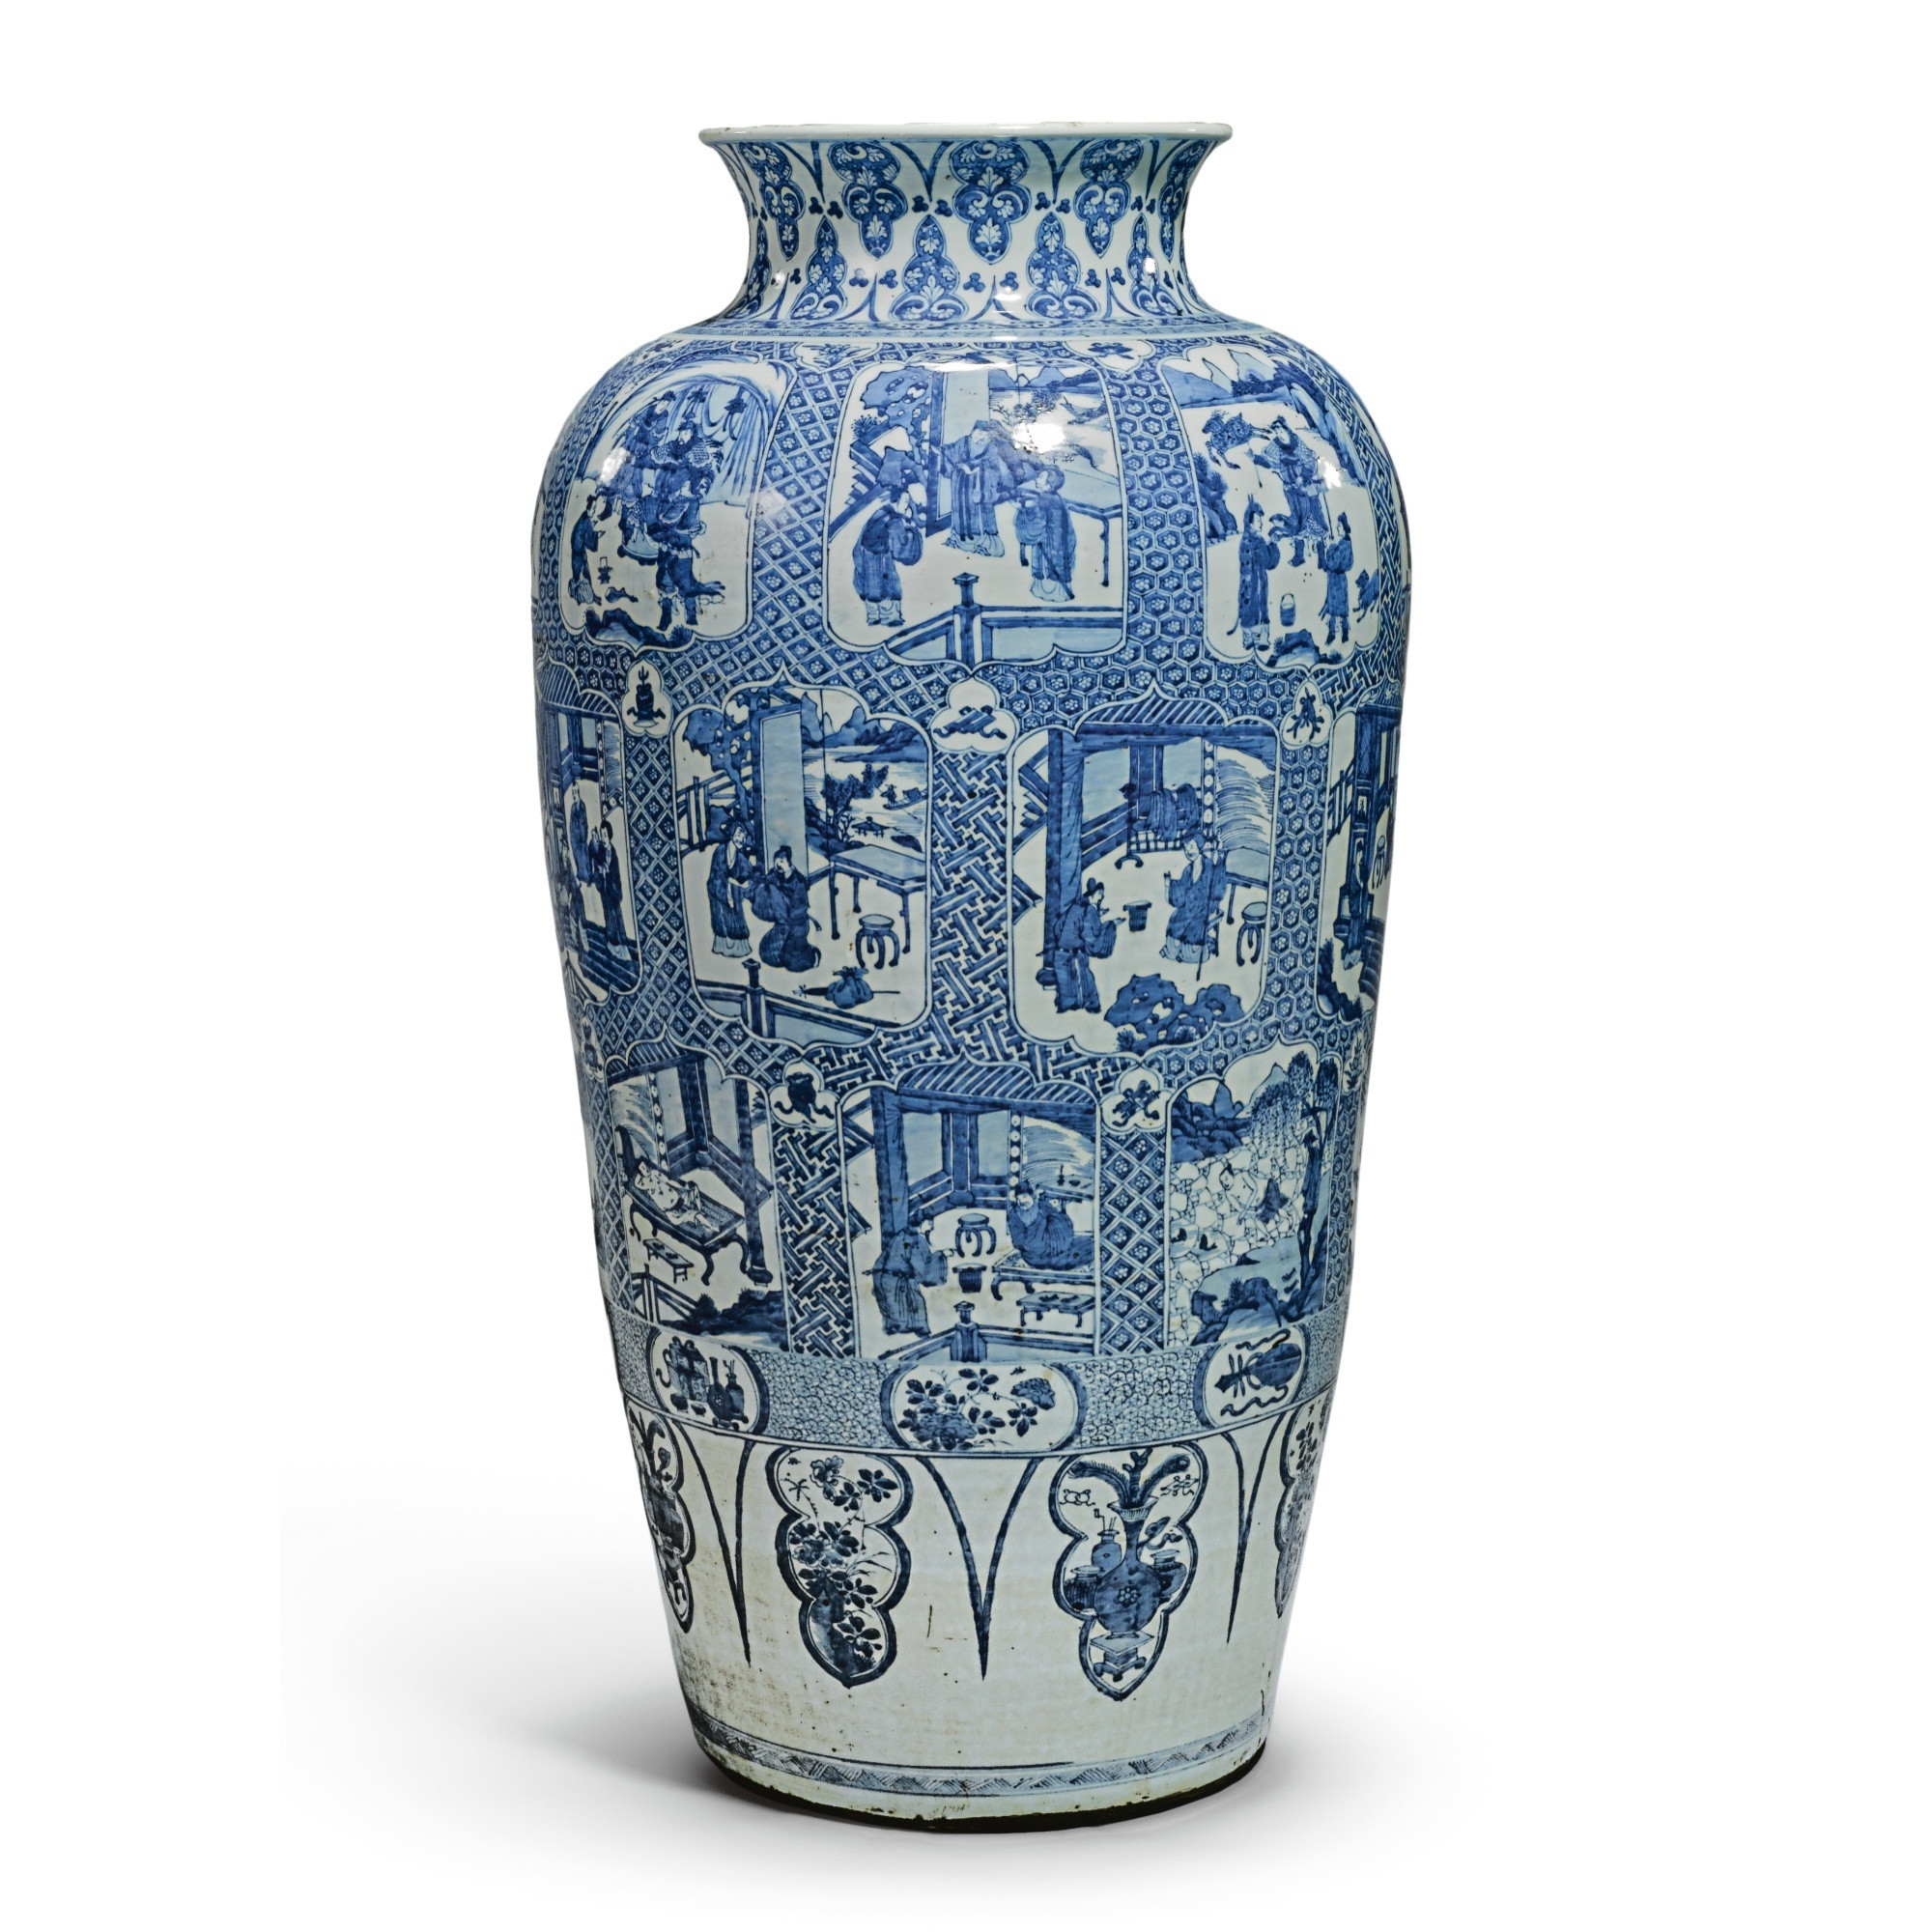 white urn vase of a large chinese kangxi blue and white soldier vase painted with intended for a large chinese kangxi blue and white soldier vase painted with the twenty